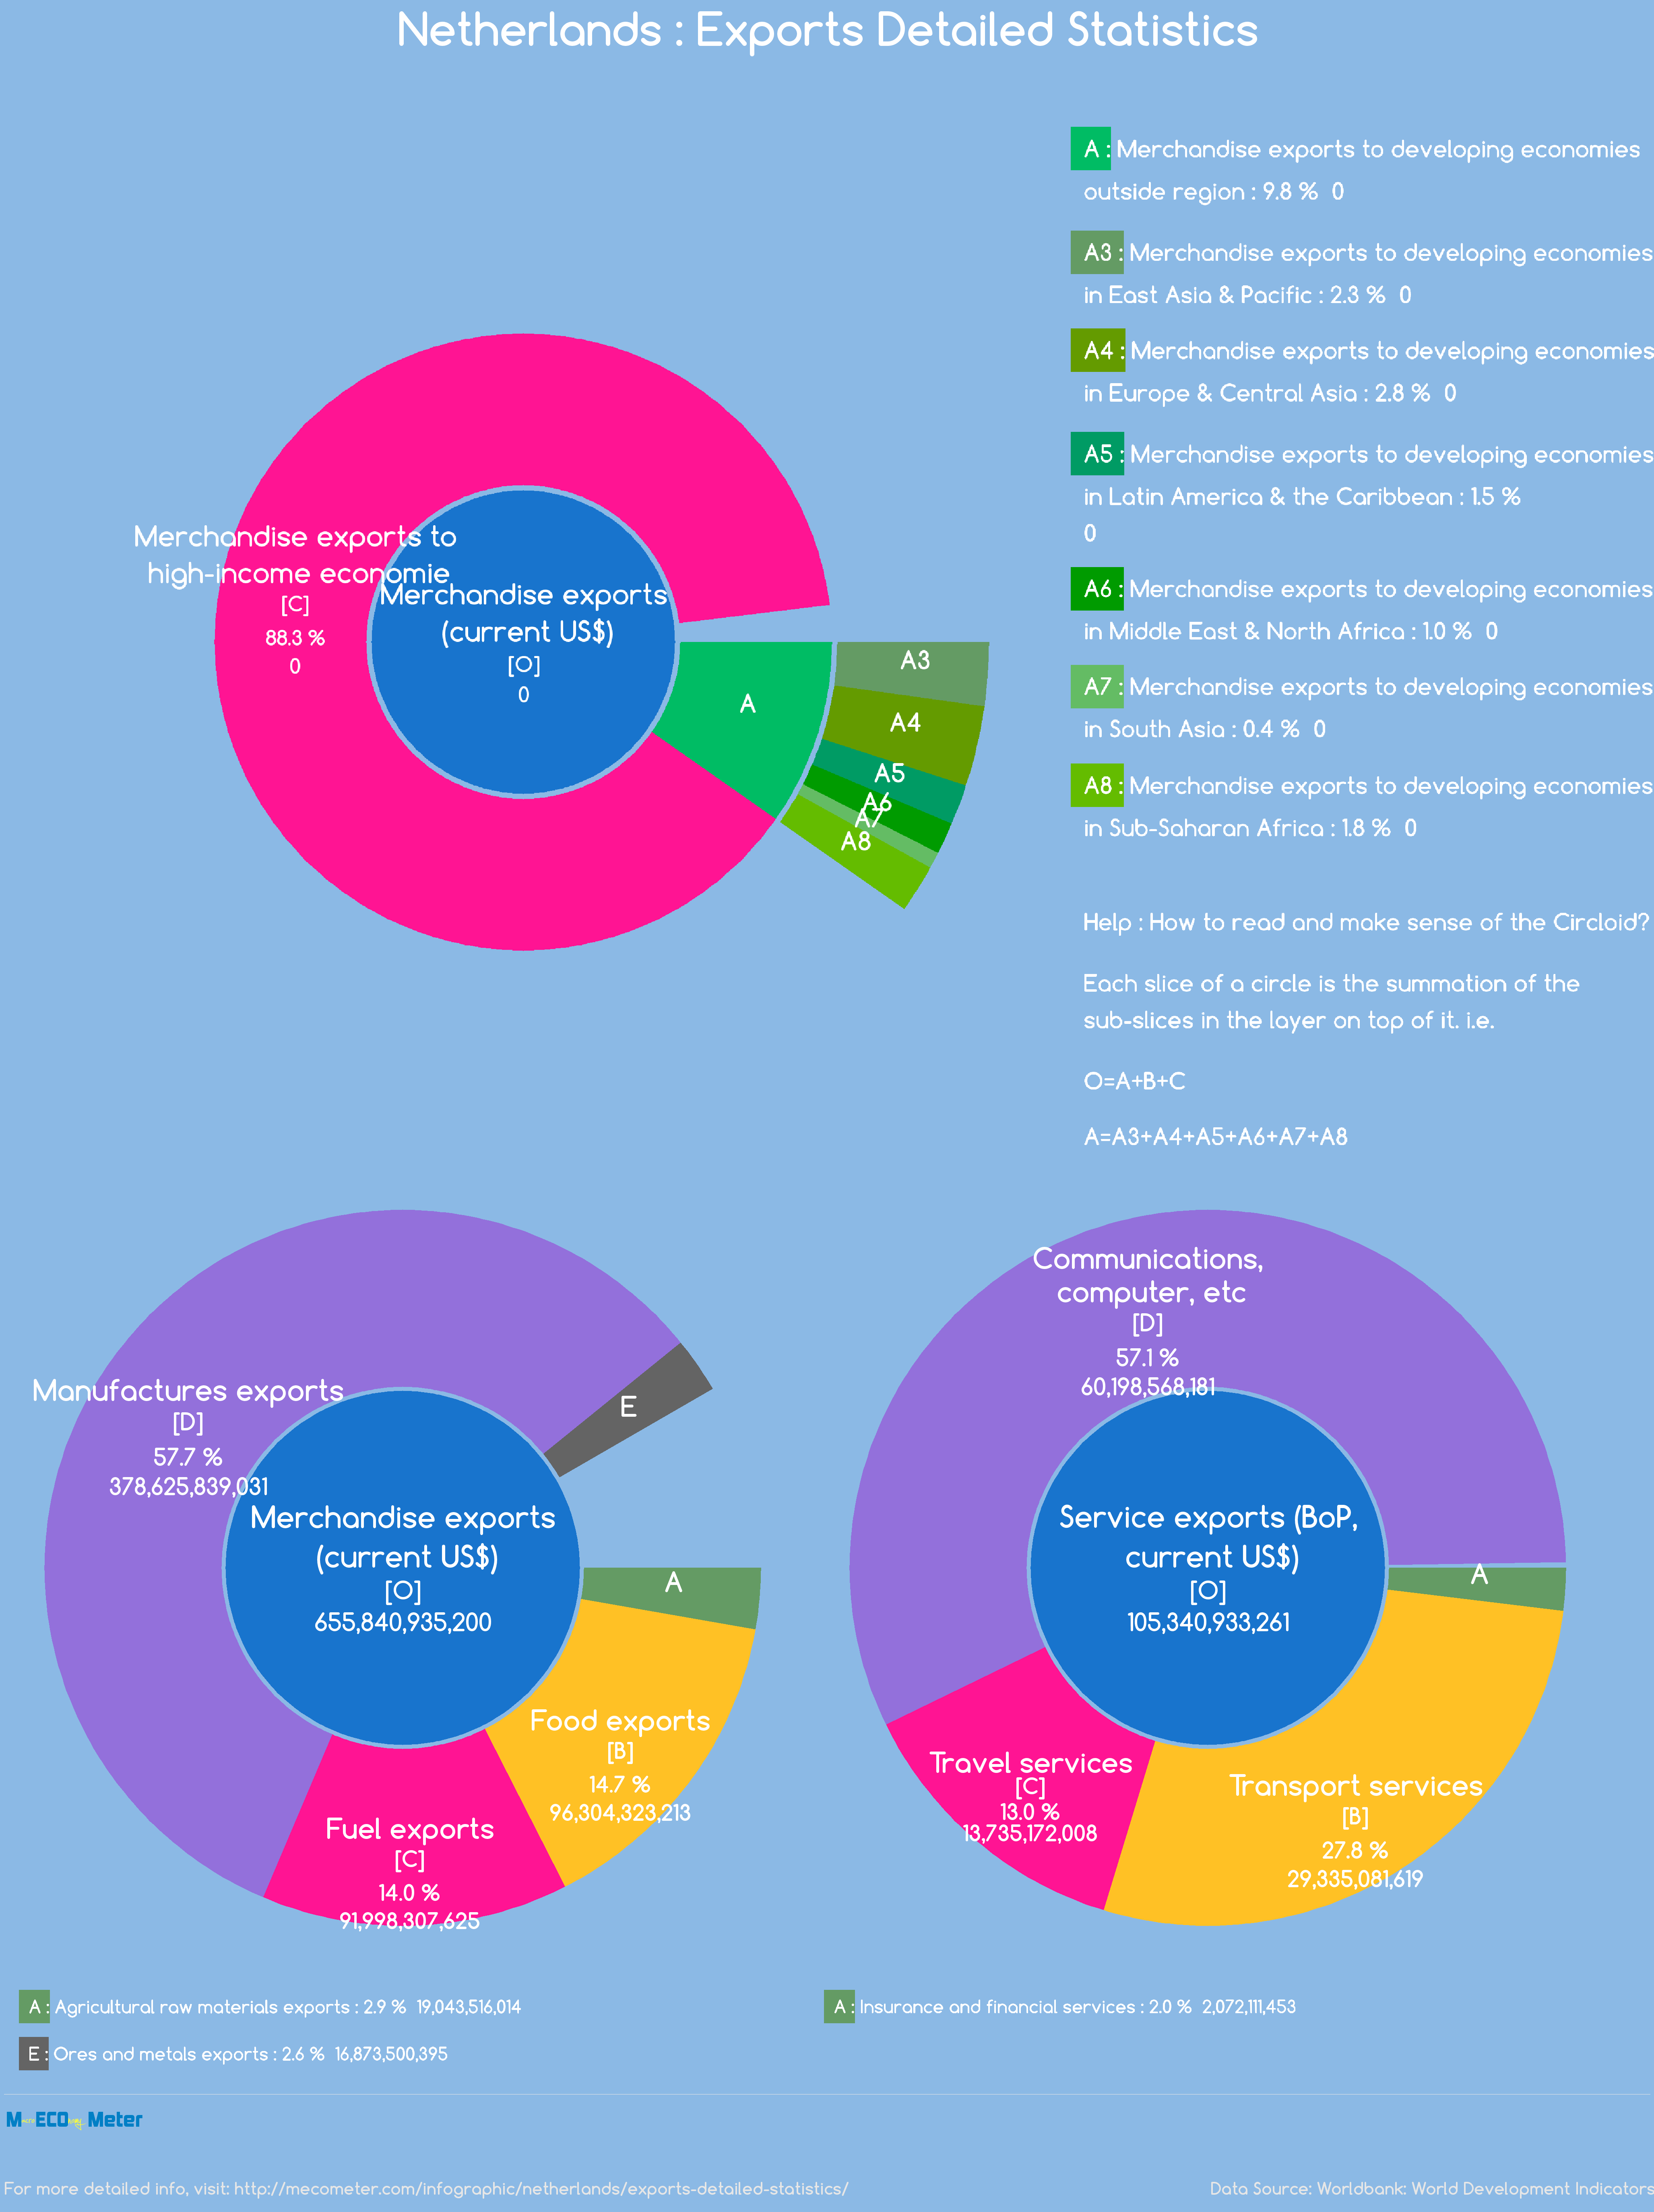 Netherlands : Exports Detailed Statistics